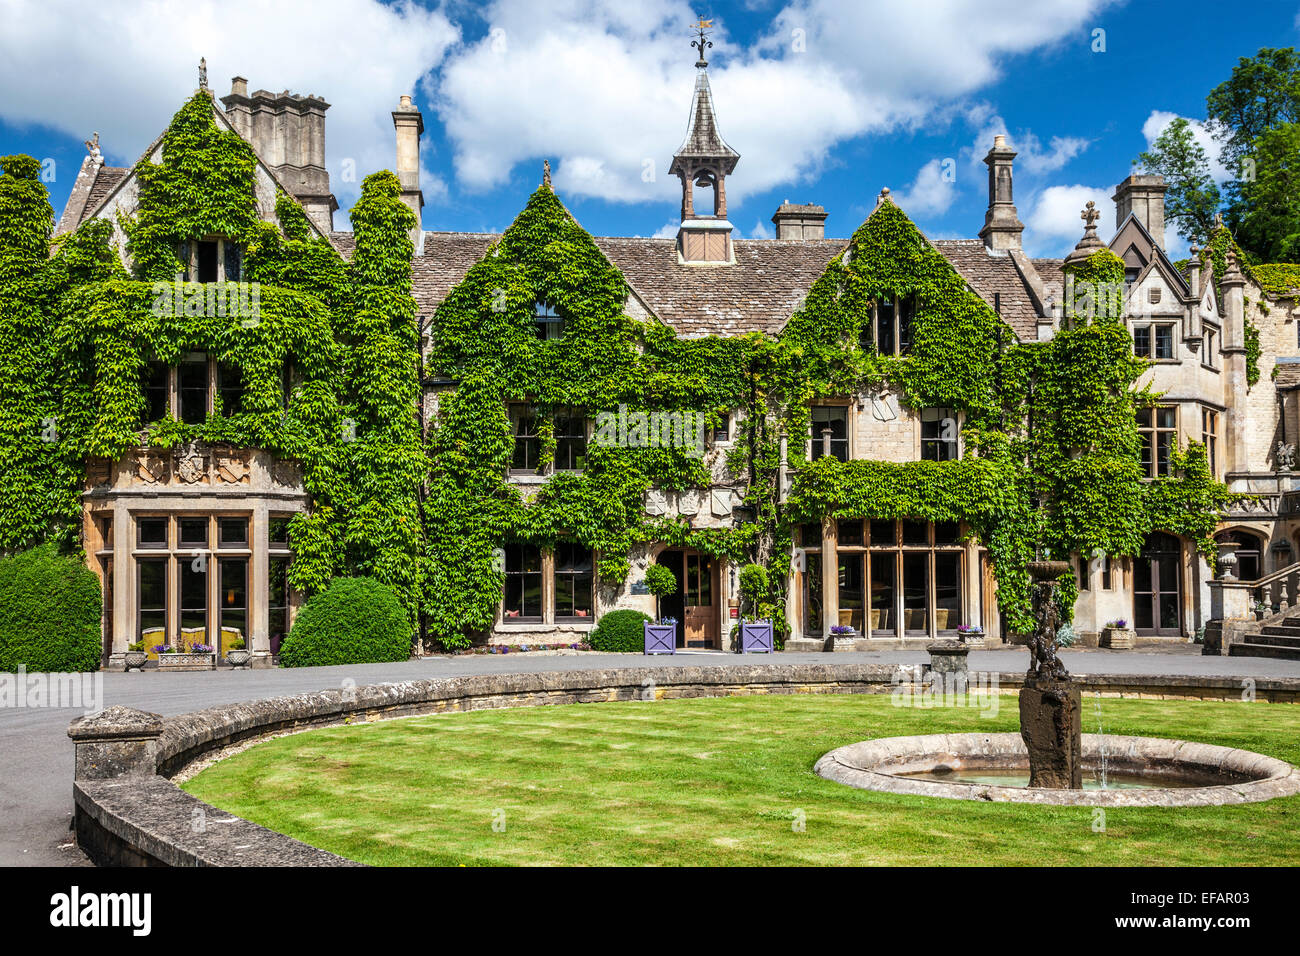 The Manor House Hotel In The Cotswold Village Of Castle